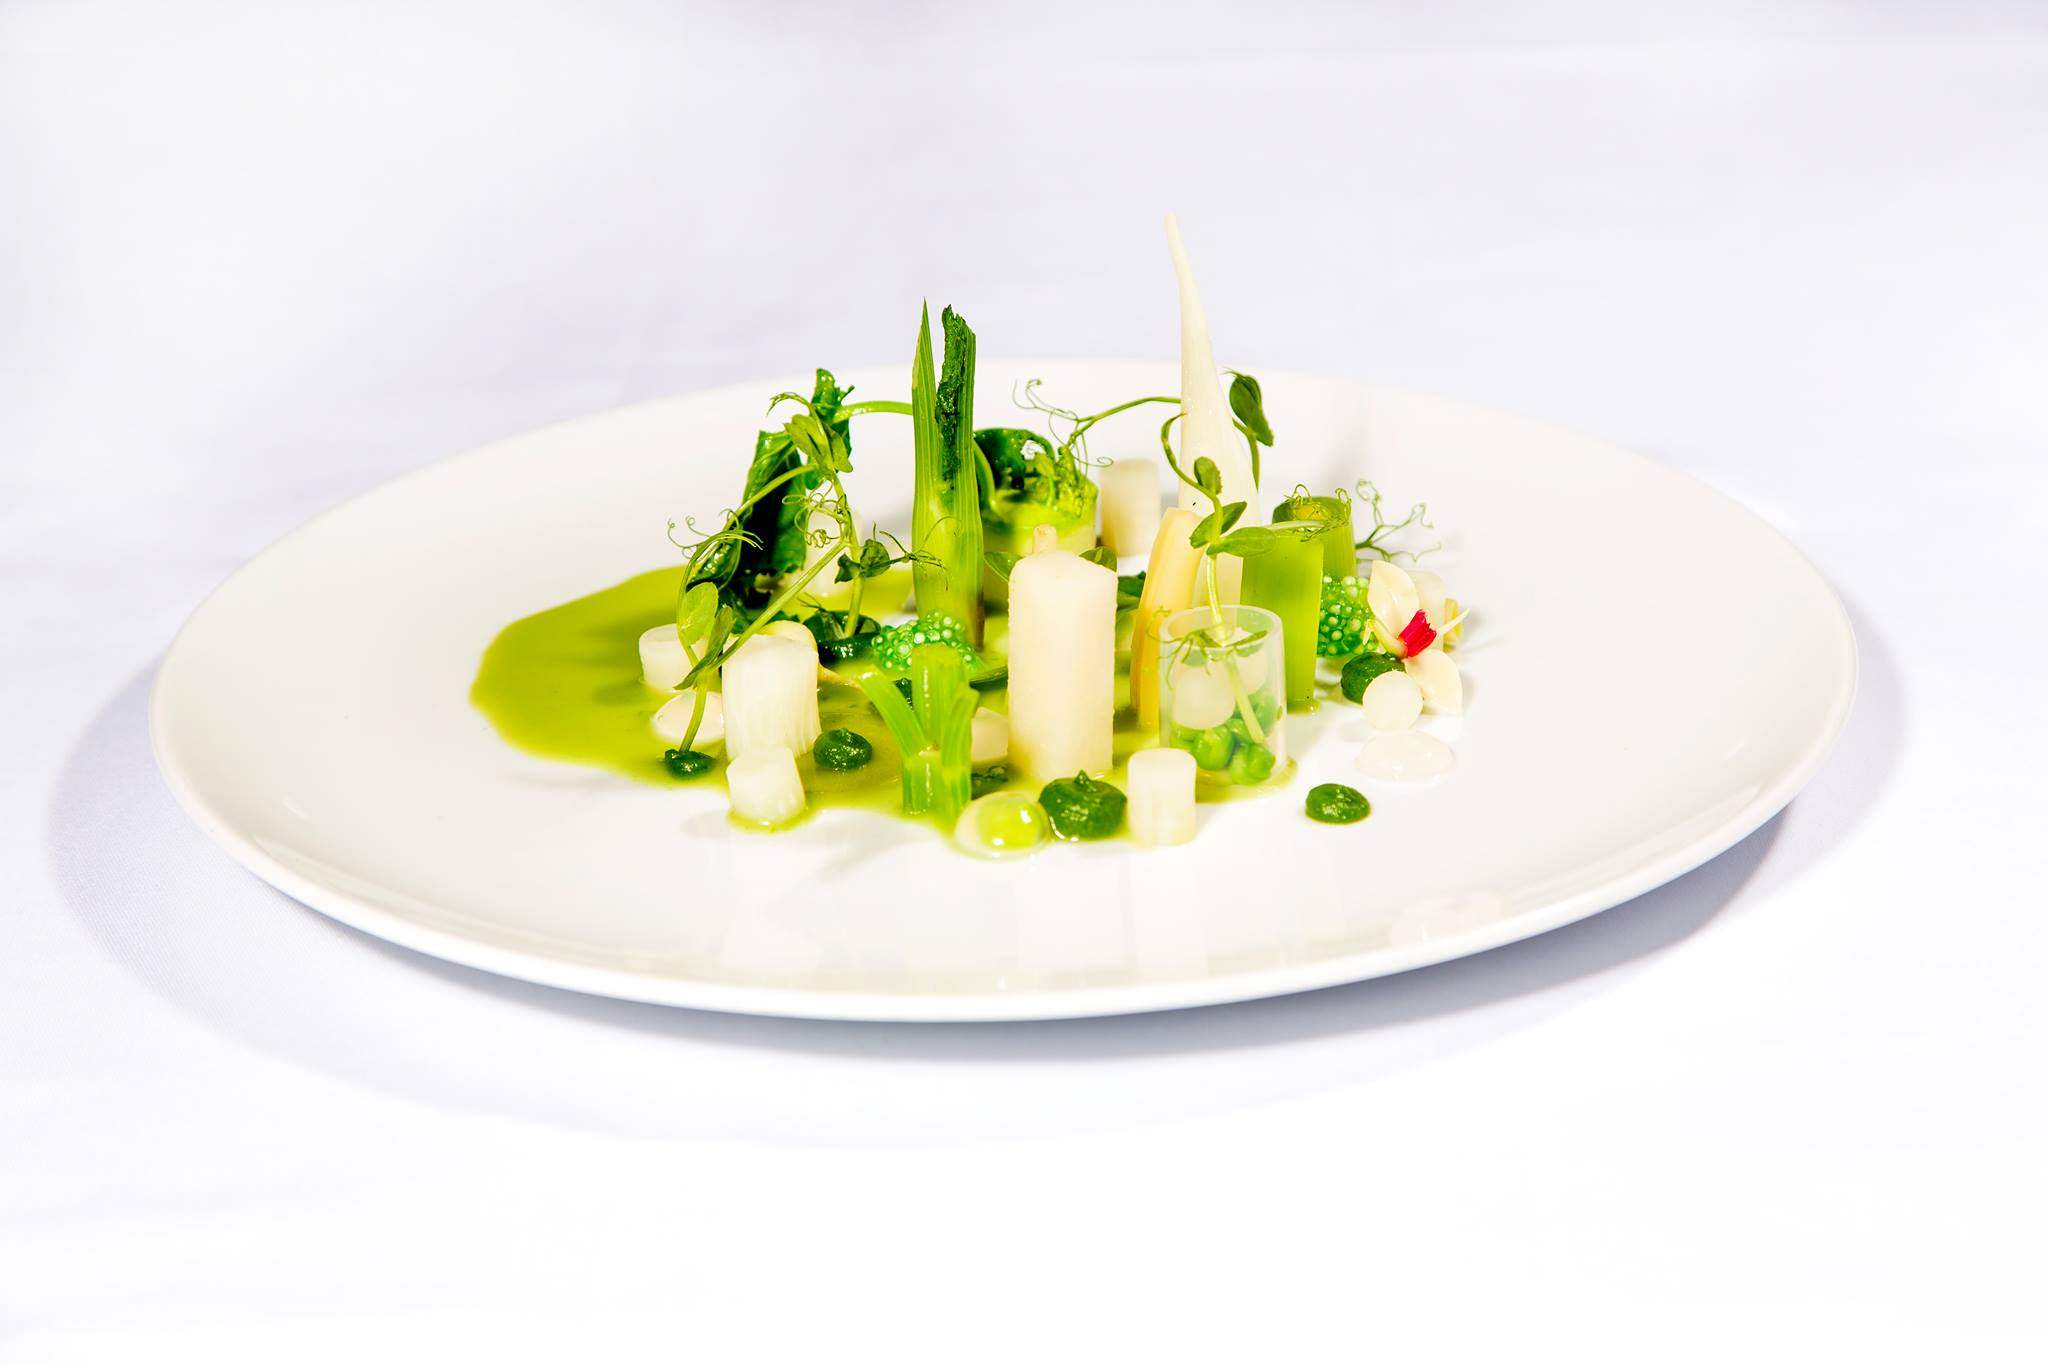 The TIAN Restaurant in Munich Is Awarded a Michelin Star 2